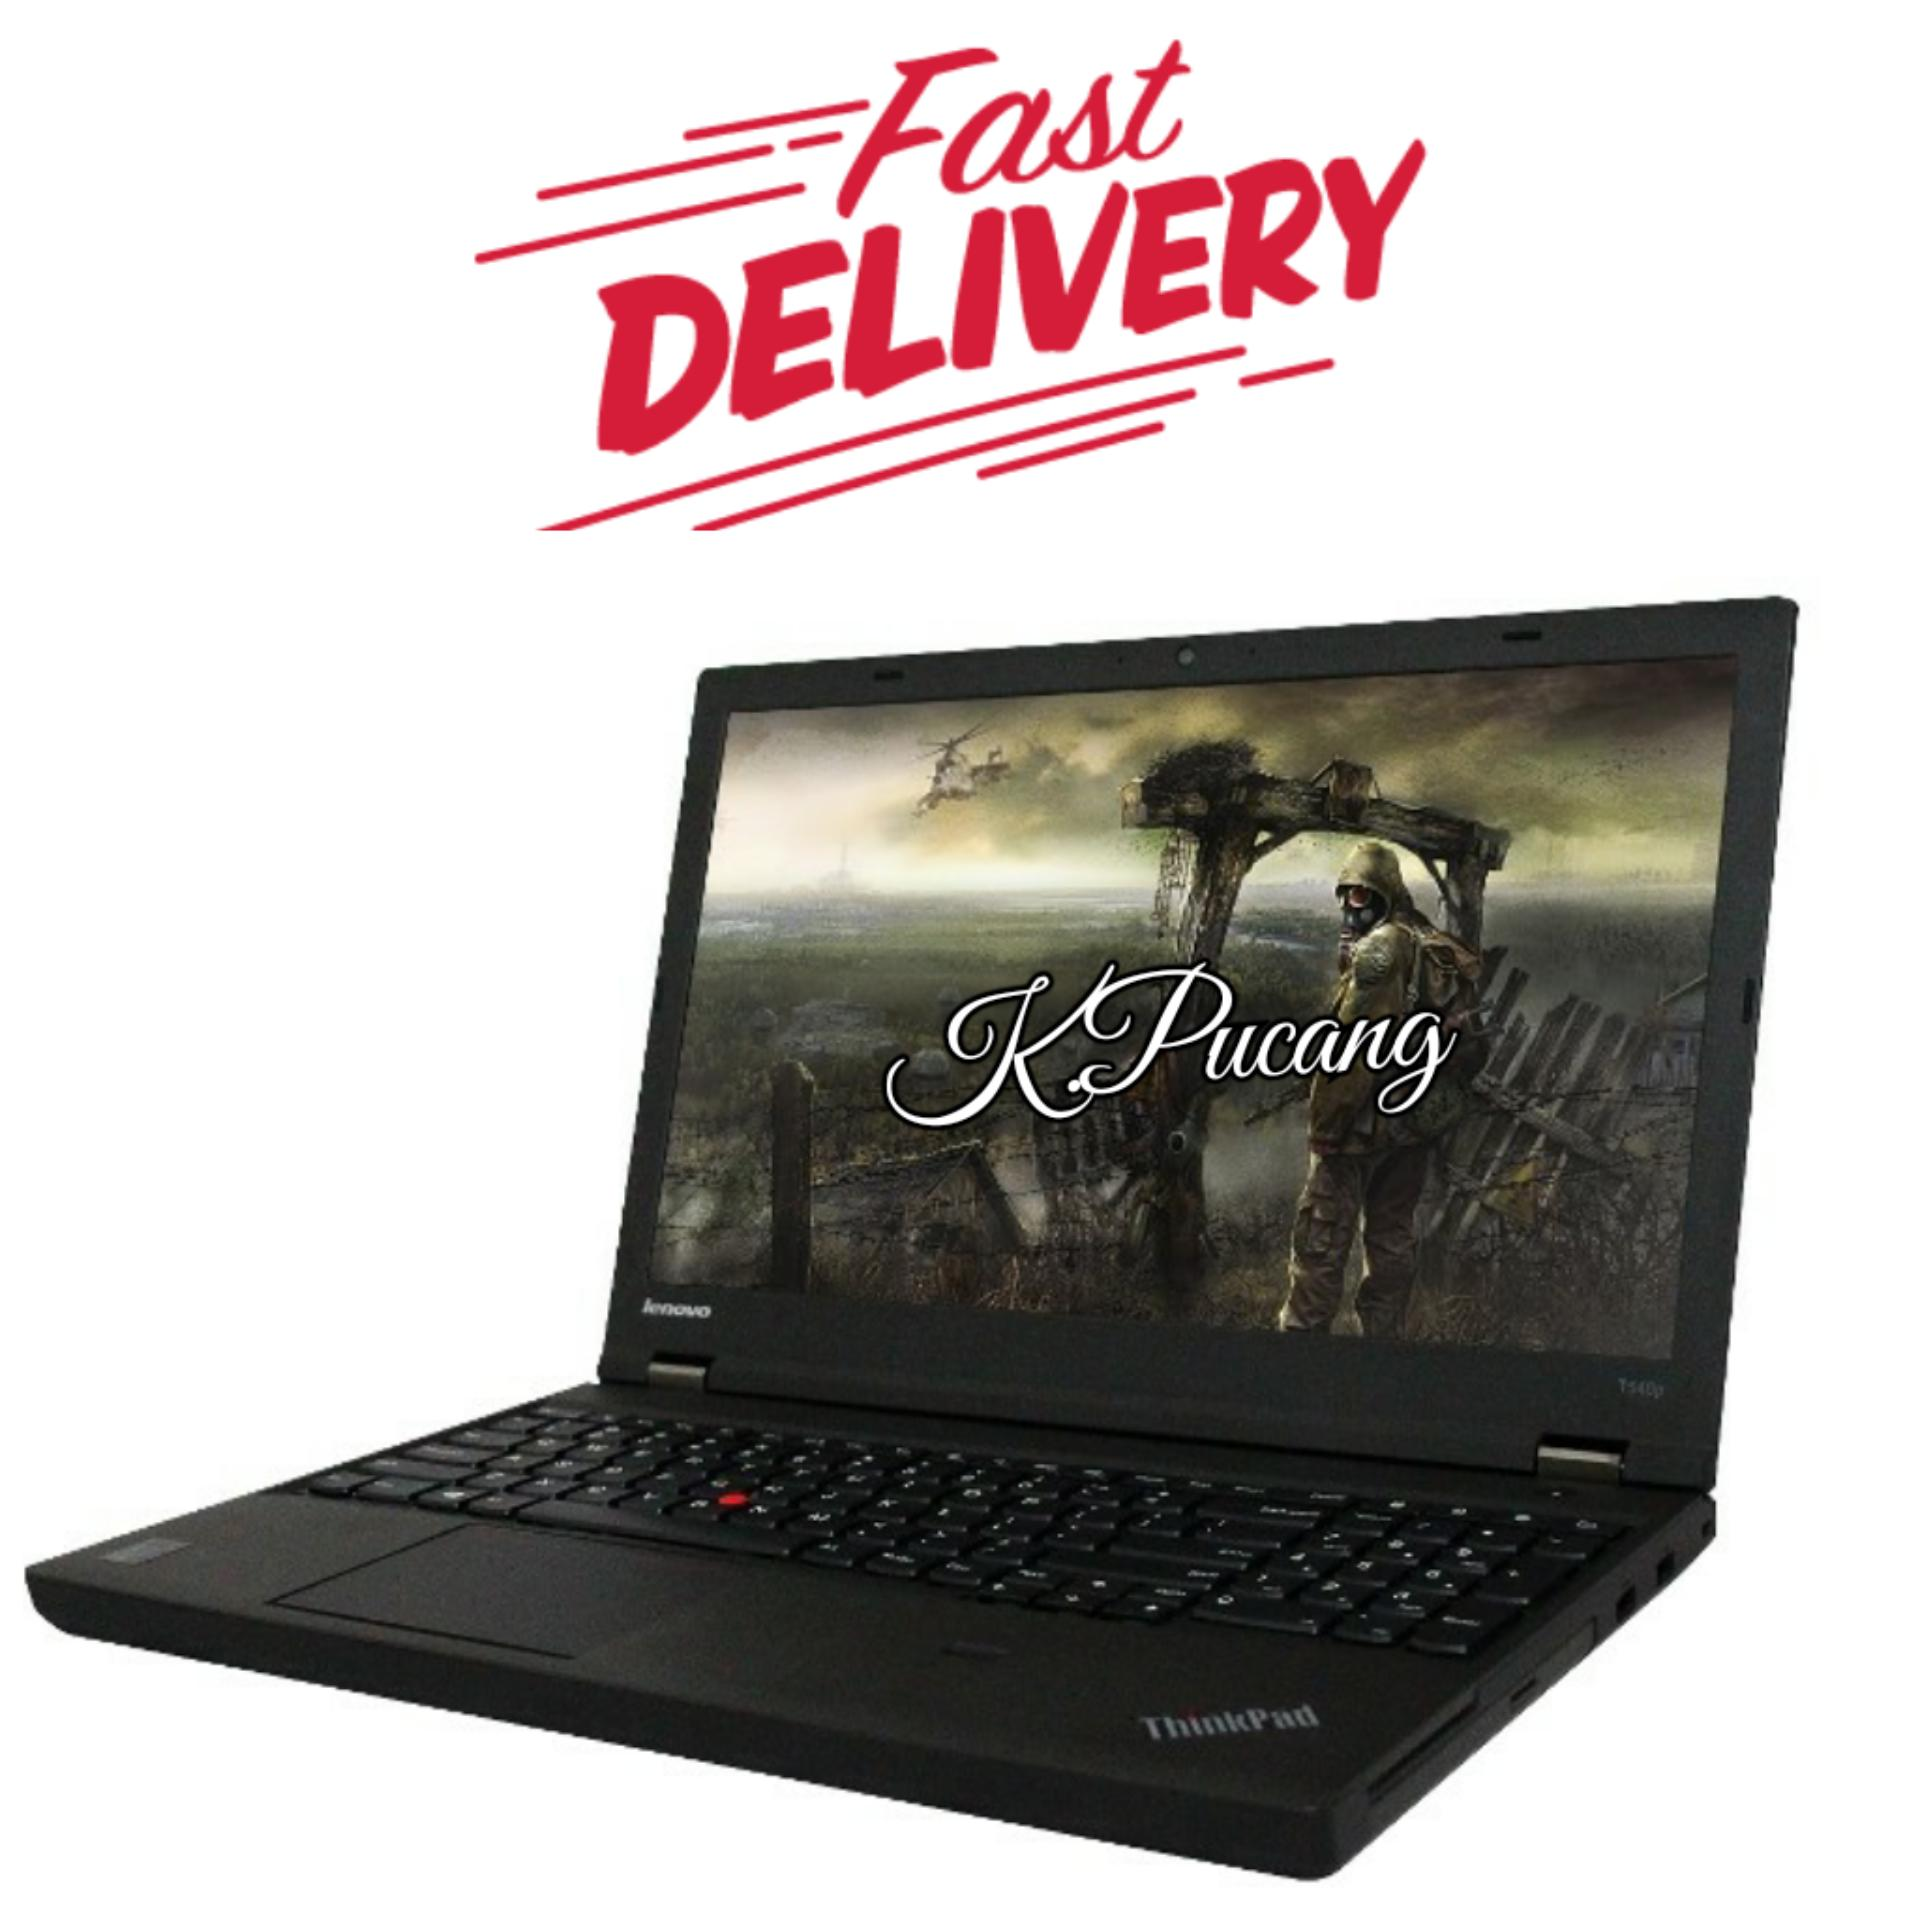 Lenovo Thinkpad T540p | Core i7-4710MQ  | 8GB DDR3 | 1TB HDD | NVIDIA GeForce GT 730M (1GB DDR 3 ) | DVDRW | DOS | 15,6